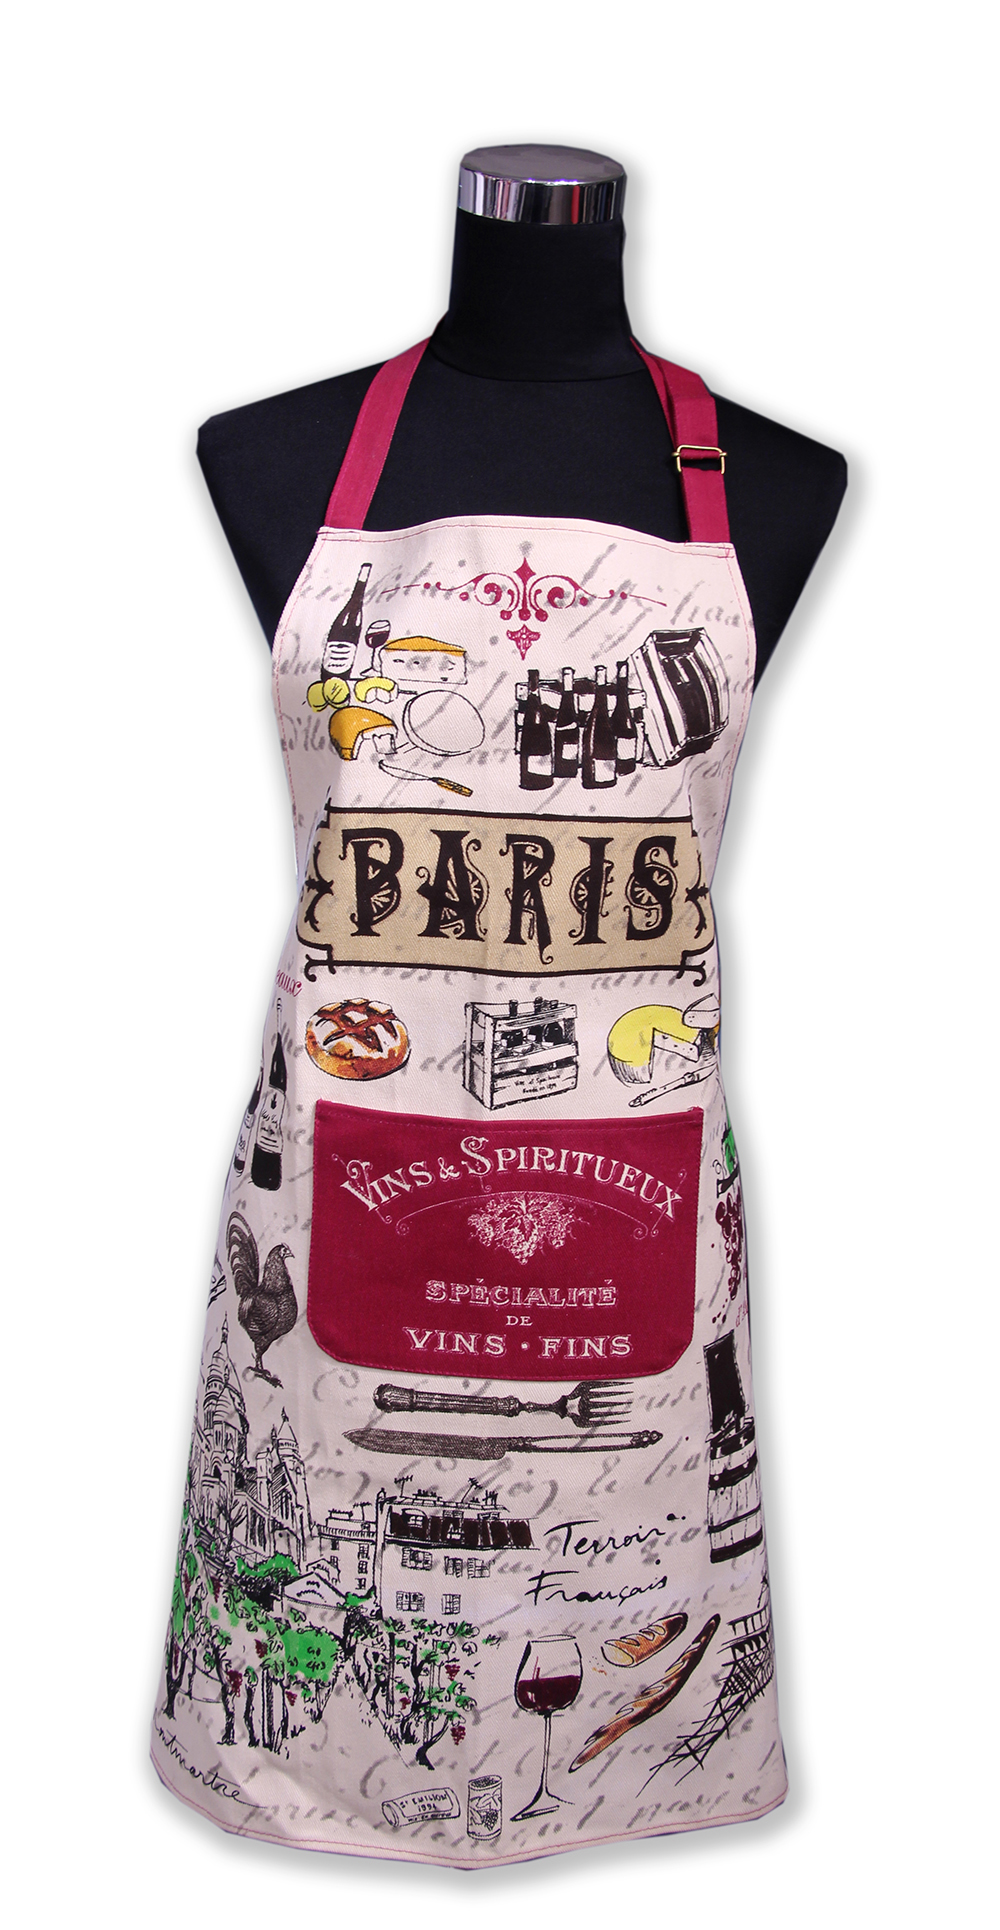 Tablier de cuisine 37 souvenirs paris paris glam for Tablier de cuisine paris